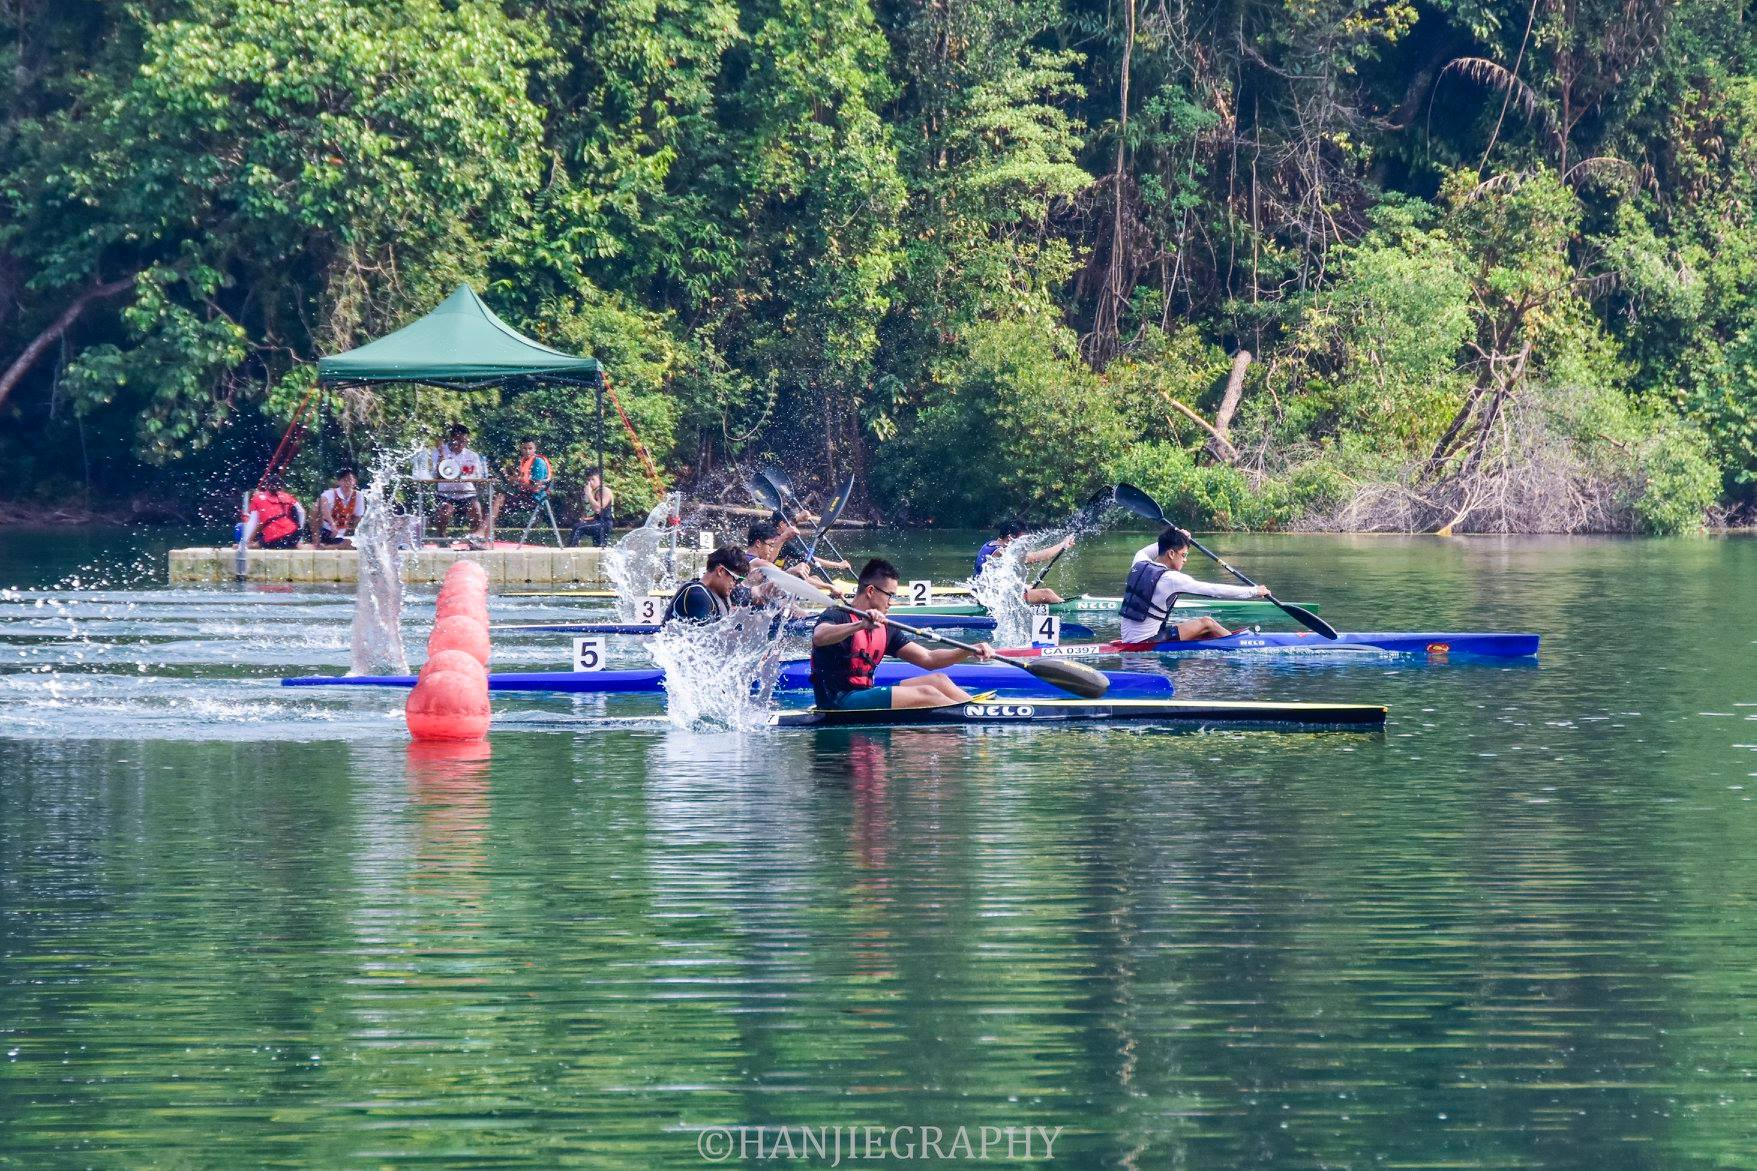 2020 Inter-Tertiary Canoe Sprint Championships - Cancelled